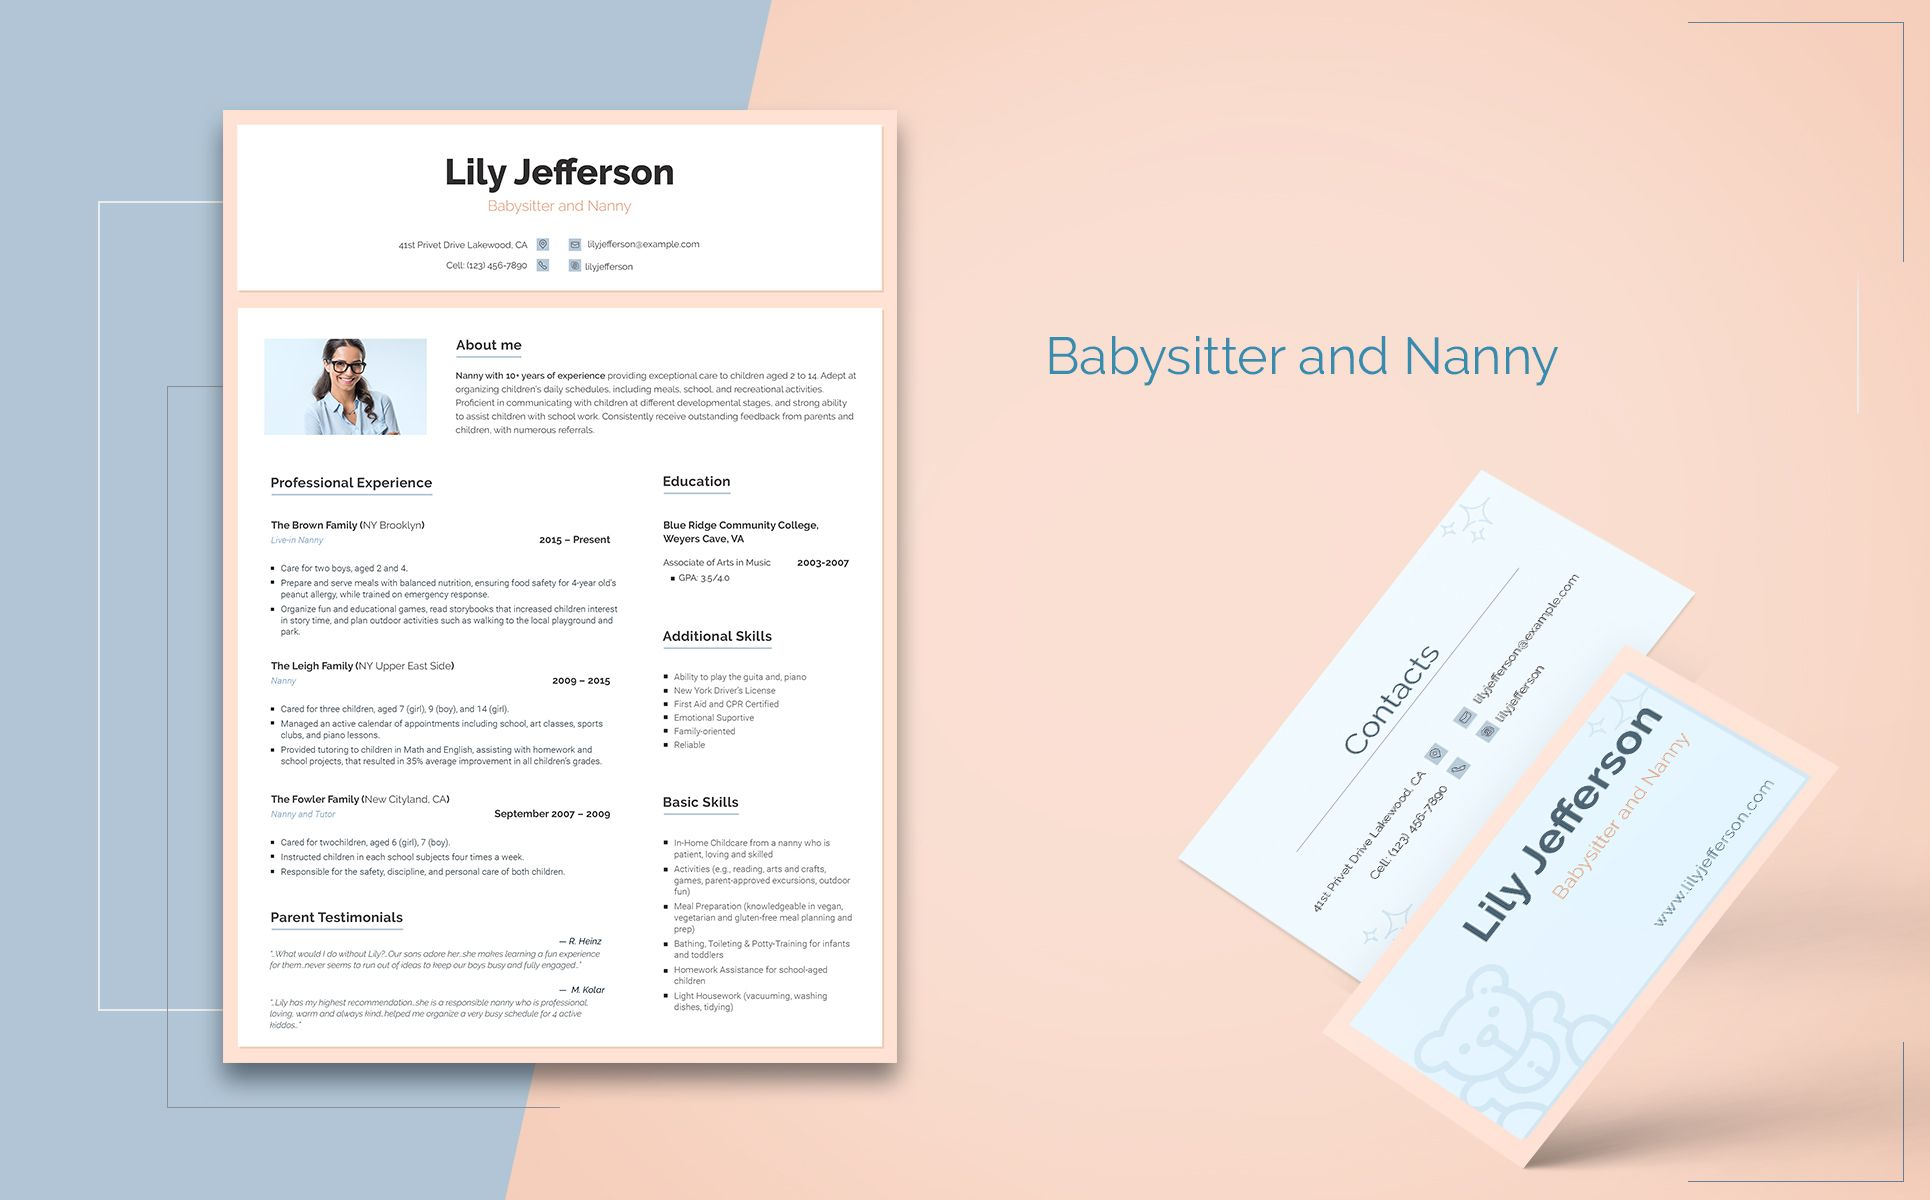 lily jefferson babysitter and nanny resume template industrial